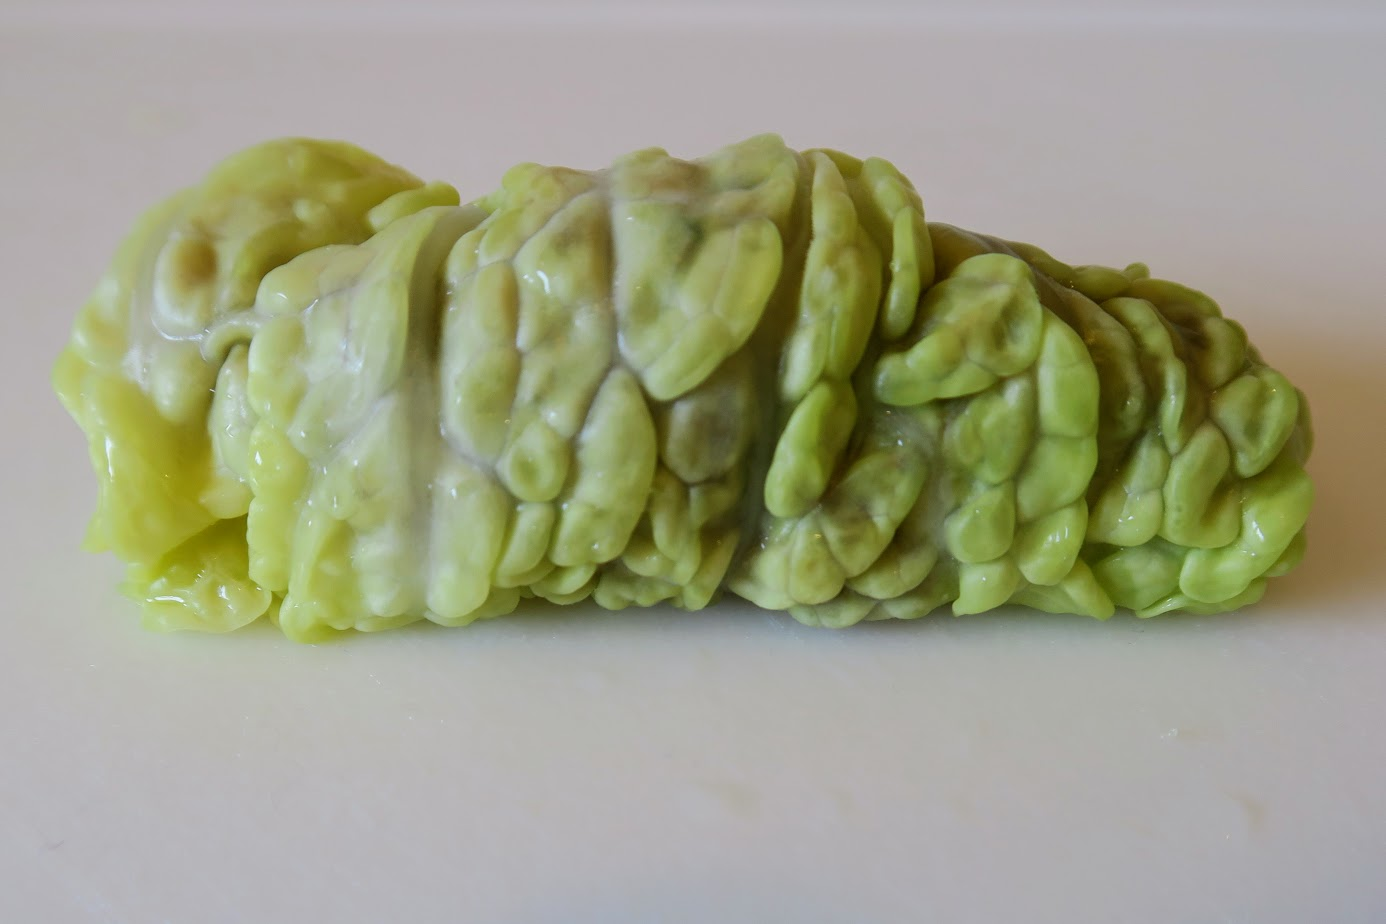 A completed cabbage roll, rolled